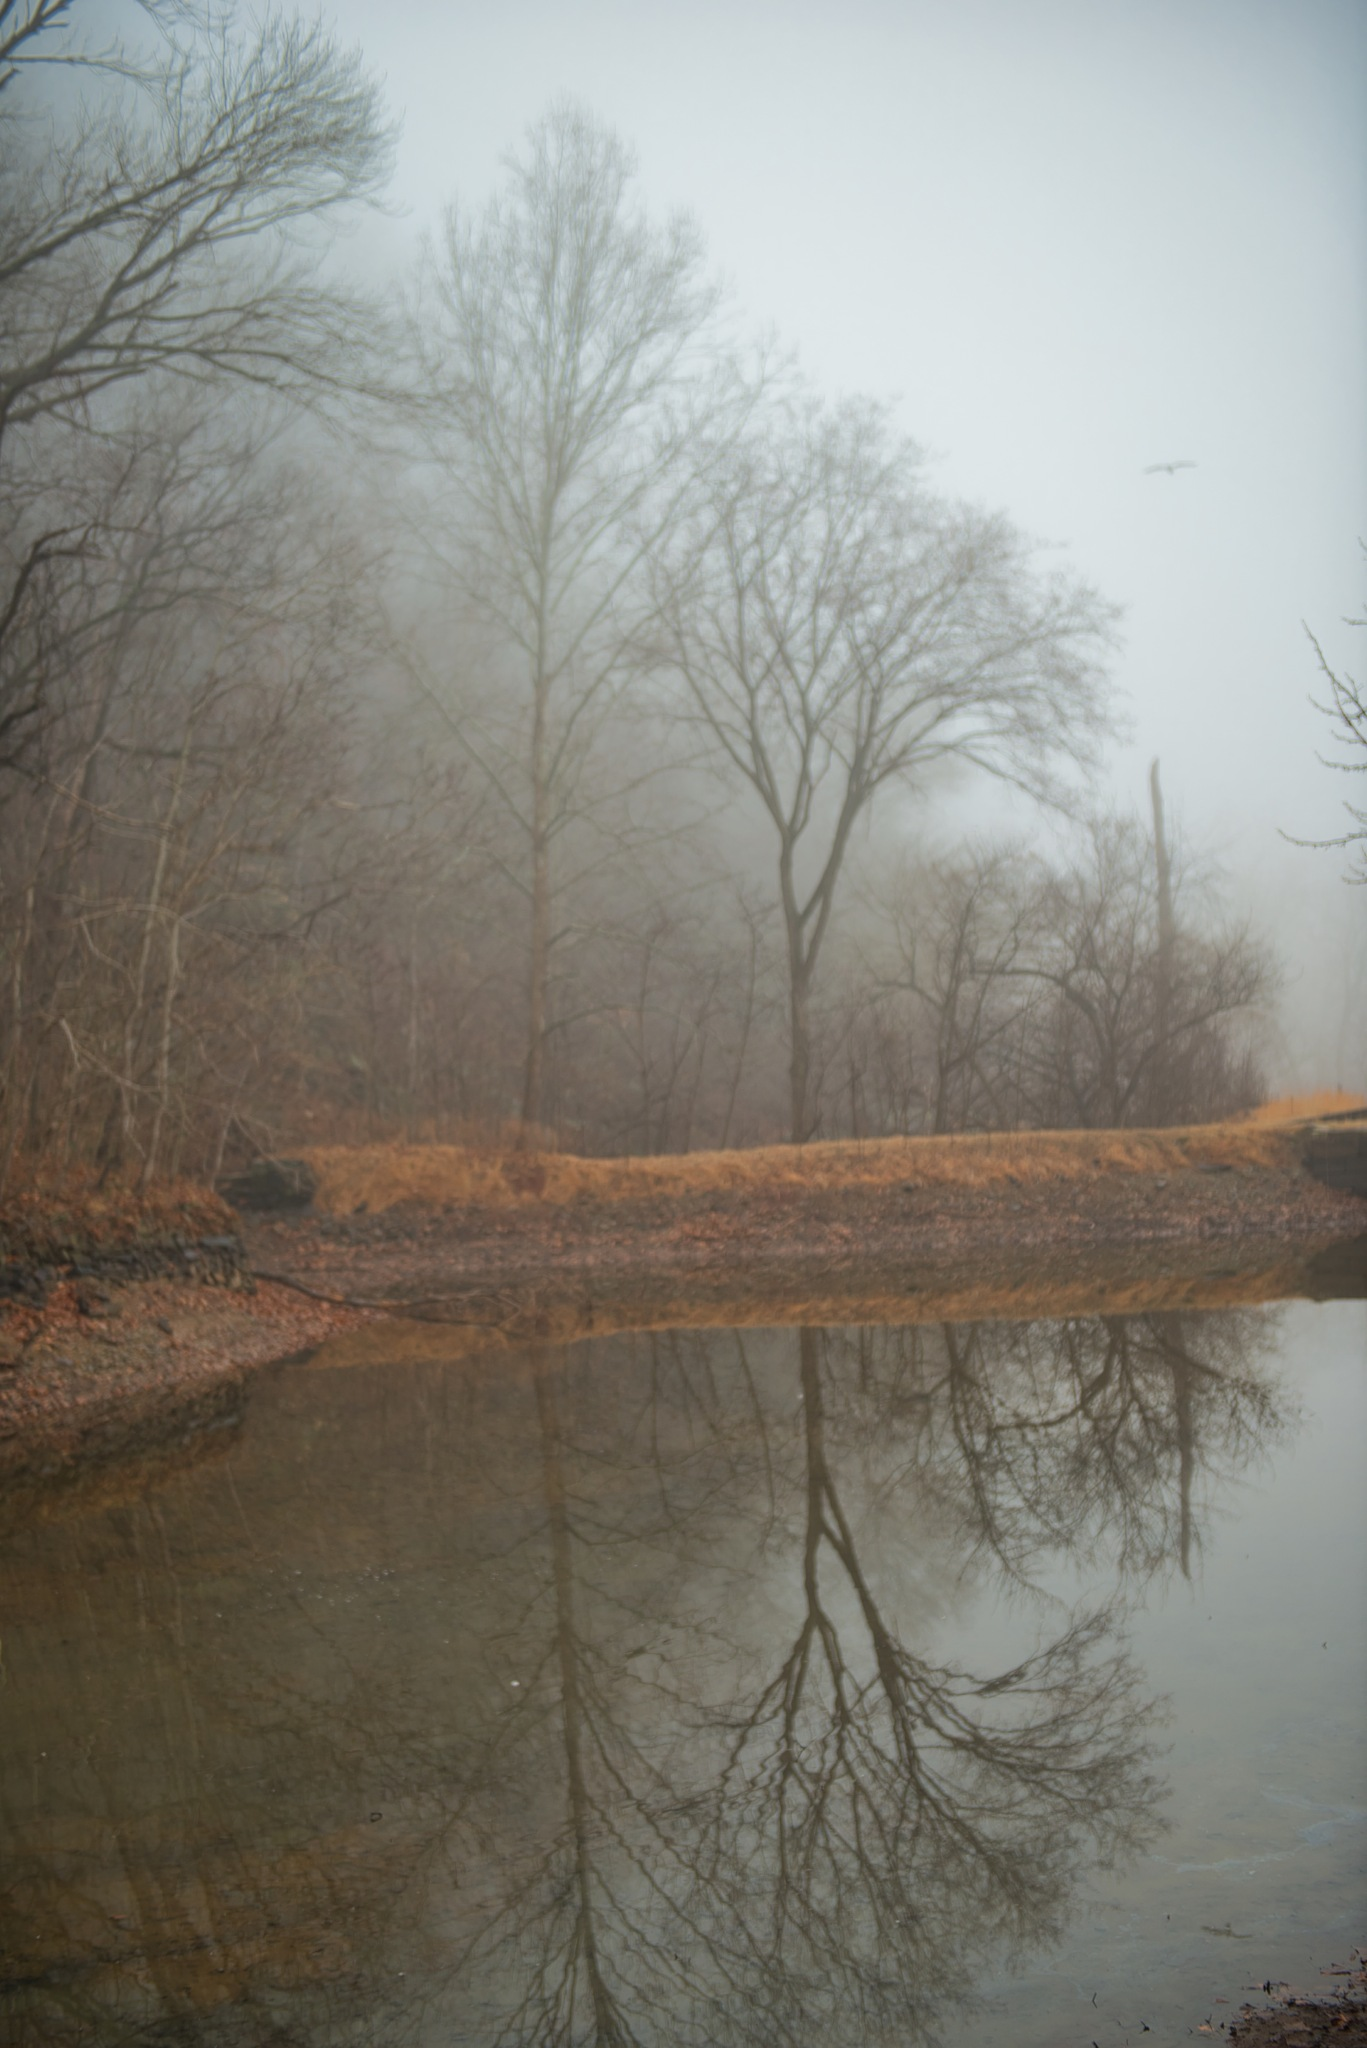 Foggy morning on the canal by FJWalker